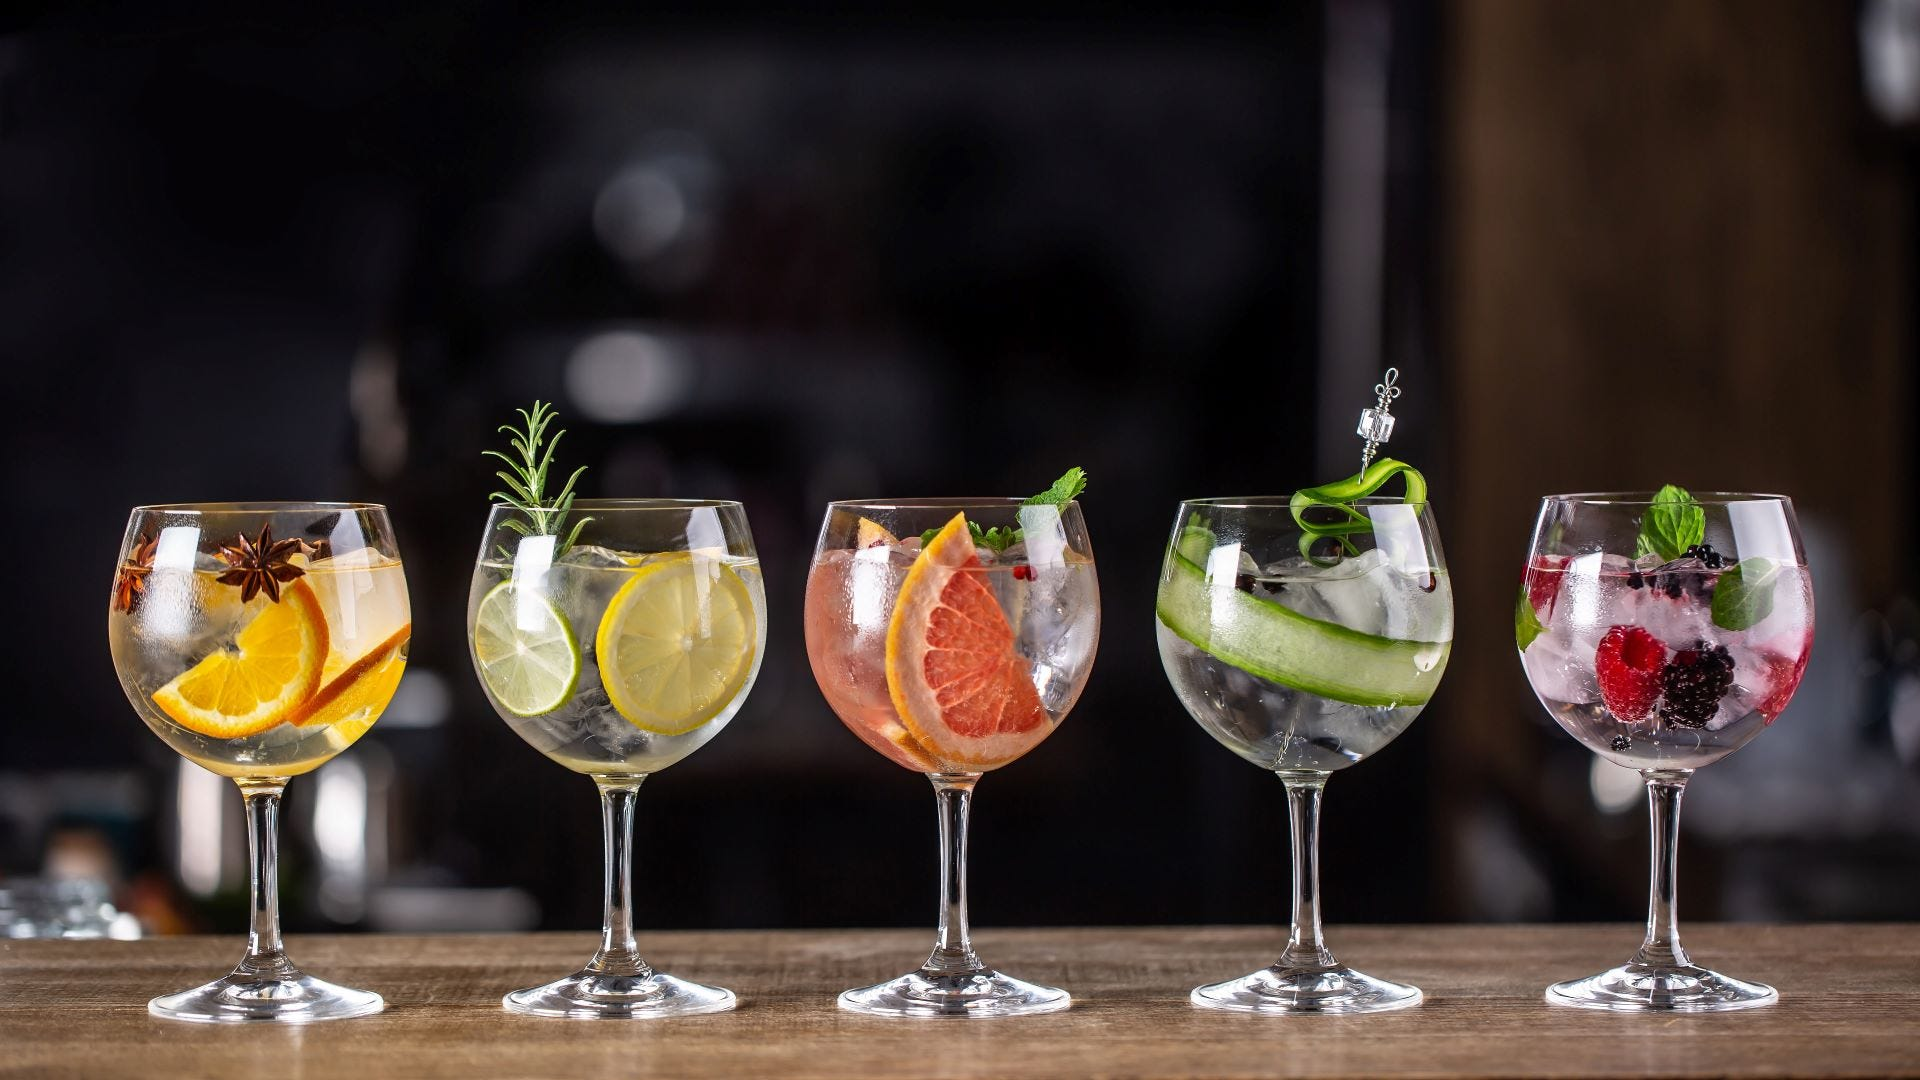 Five cocktails on a bar with different garnishes.